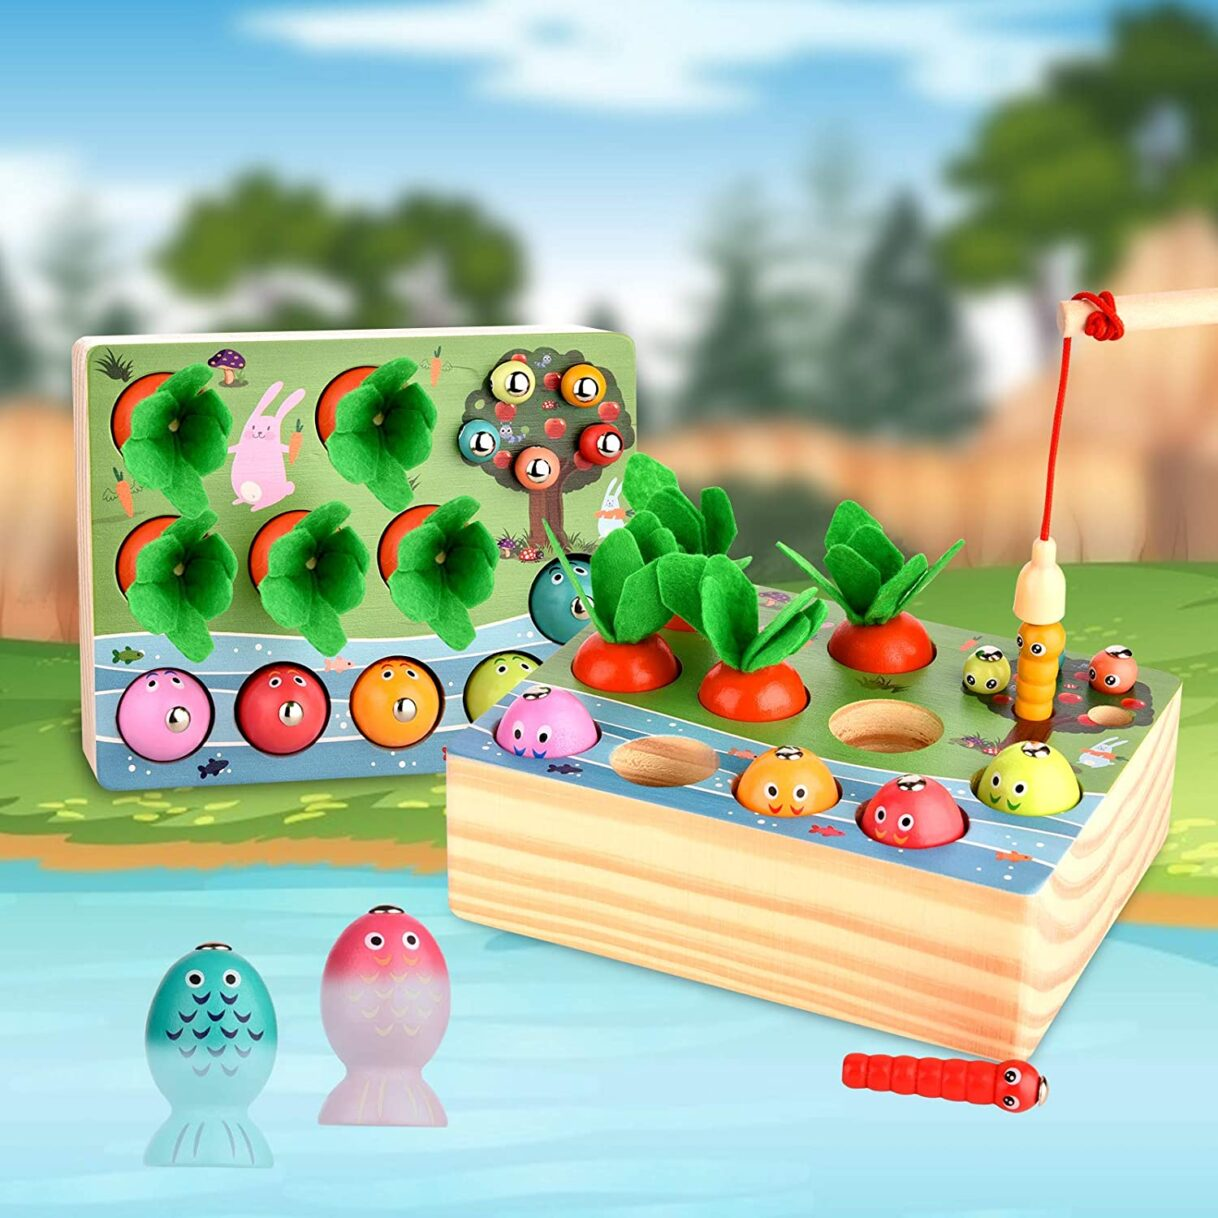 Life's a Garden Dig It: Magnetic Carrot Harvesting, Worm Digging, and Fishing Game